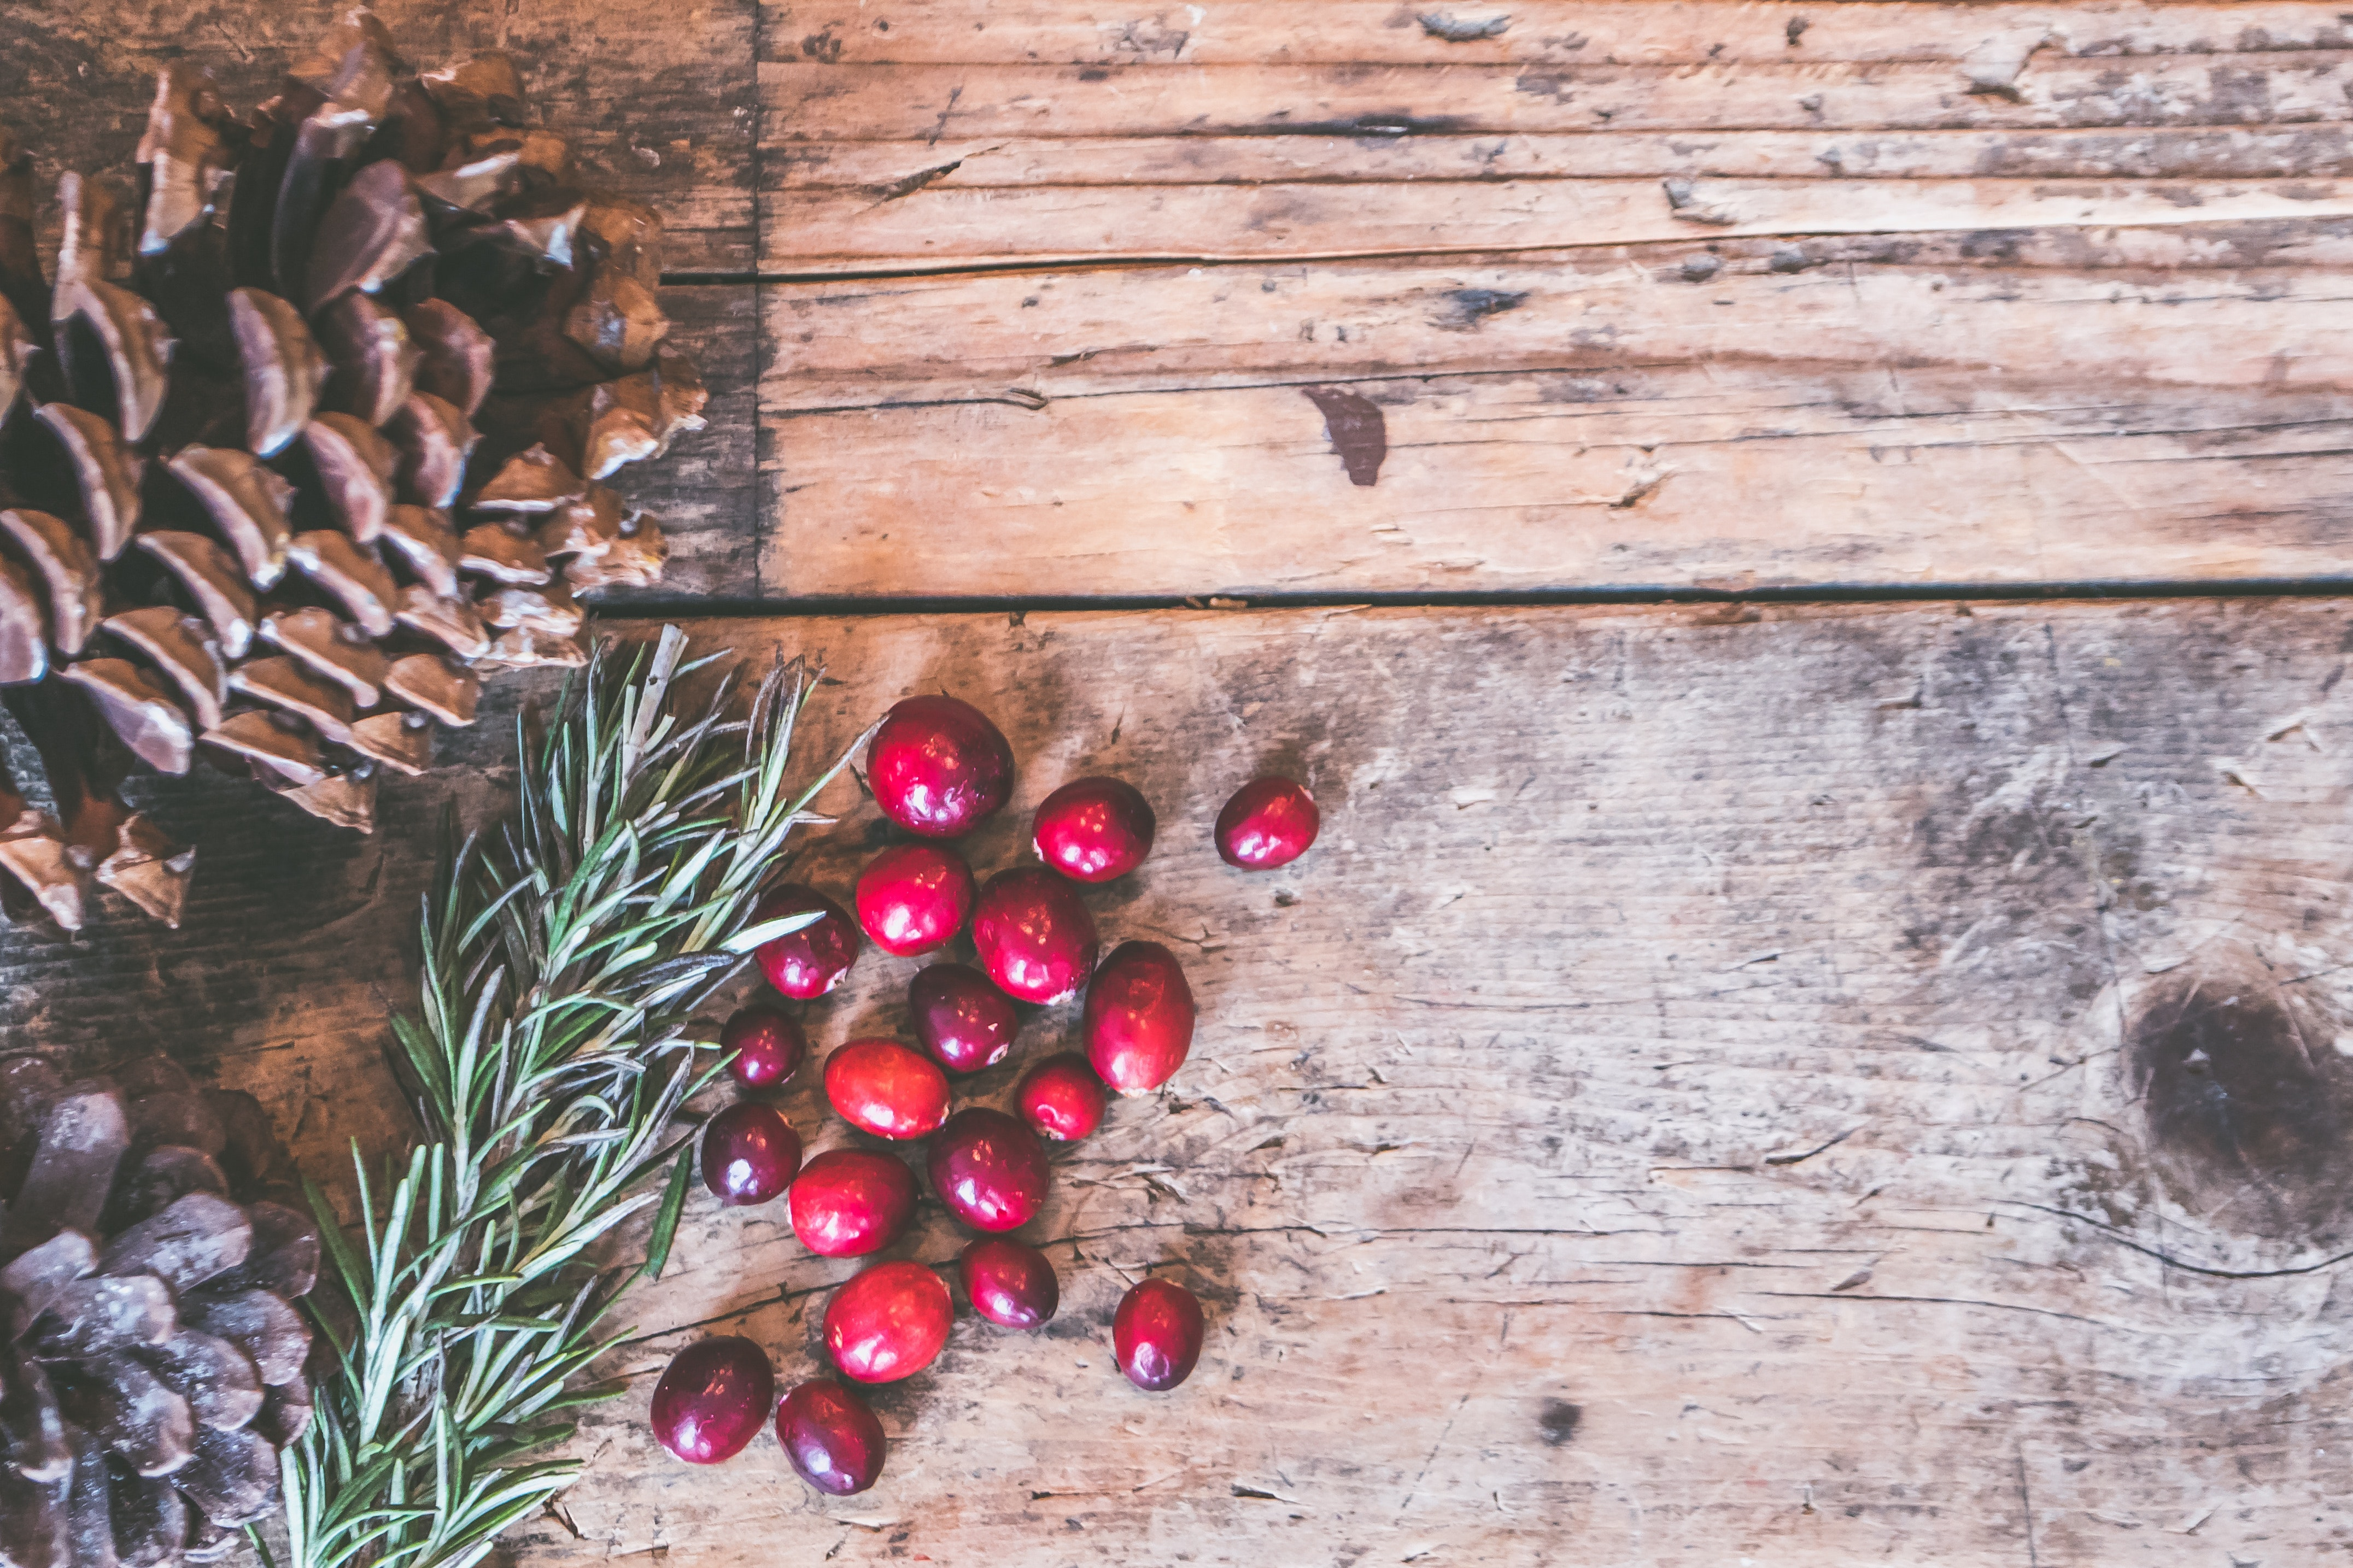 Red Fruits on Table, Acorns, Rough, Wood, Winter, HQ Photo